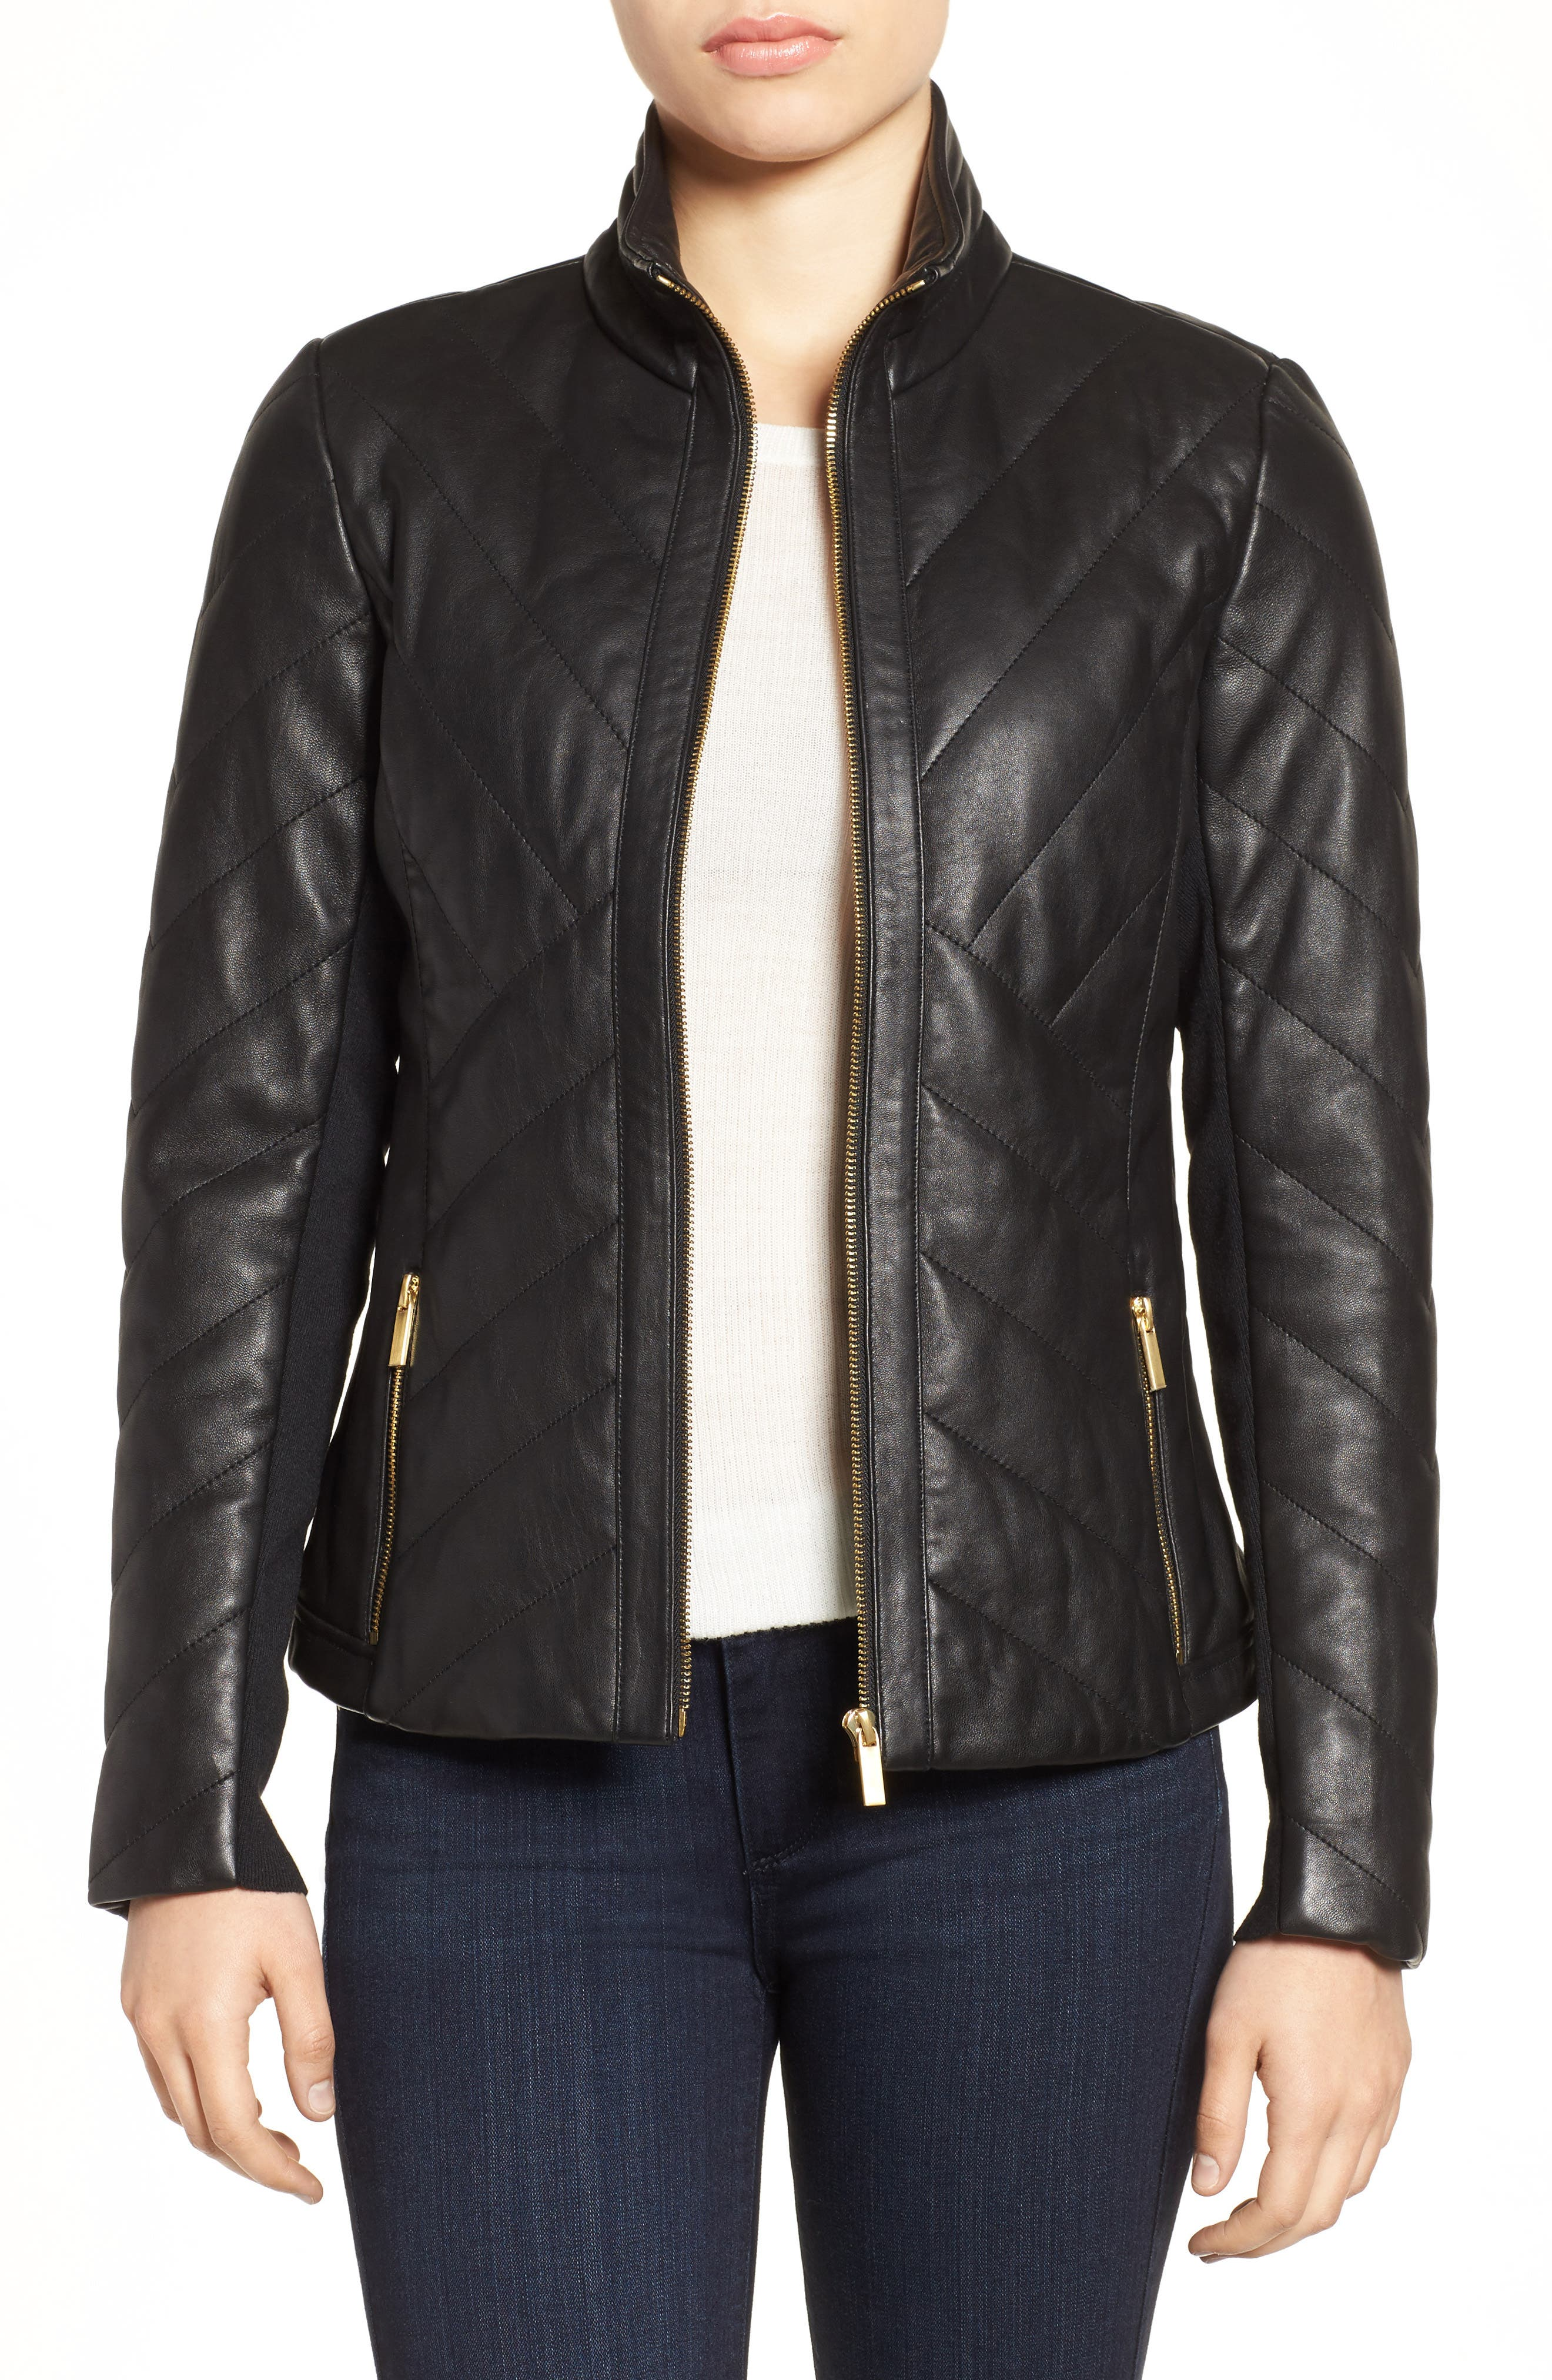 Badgley Mischka Eloise Quilted Leather Moto Jacket